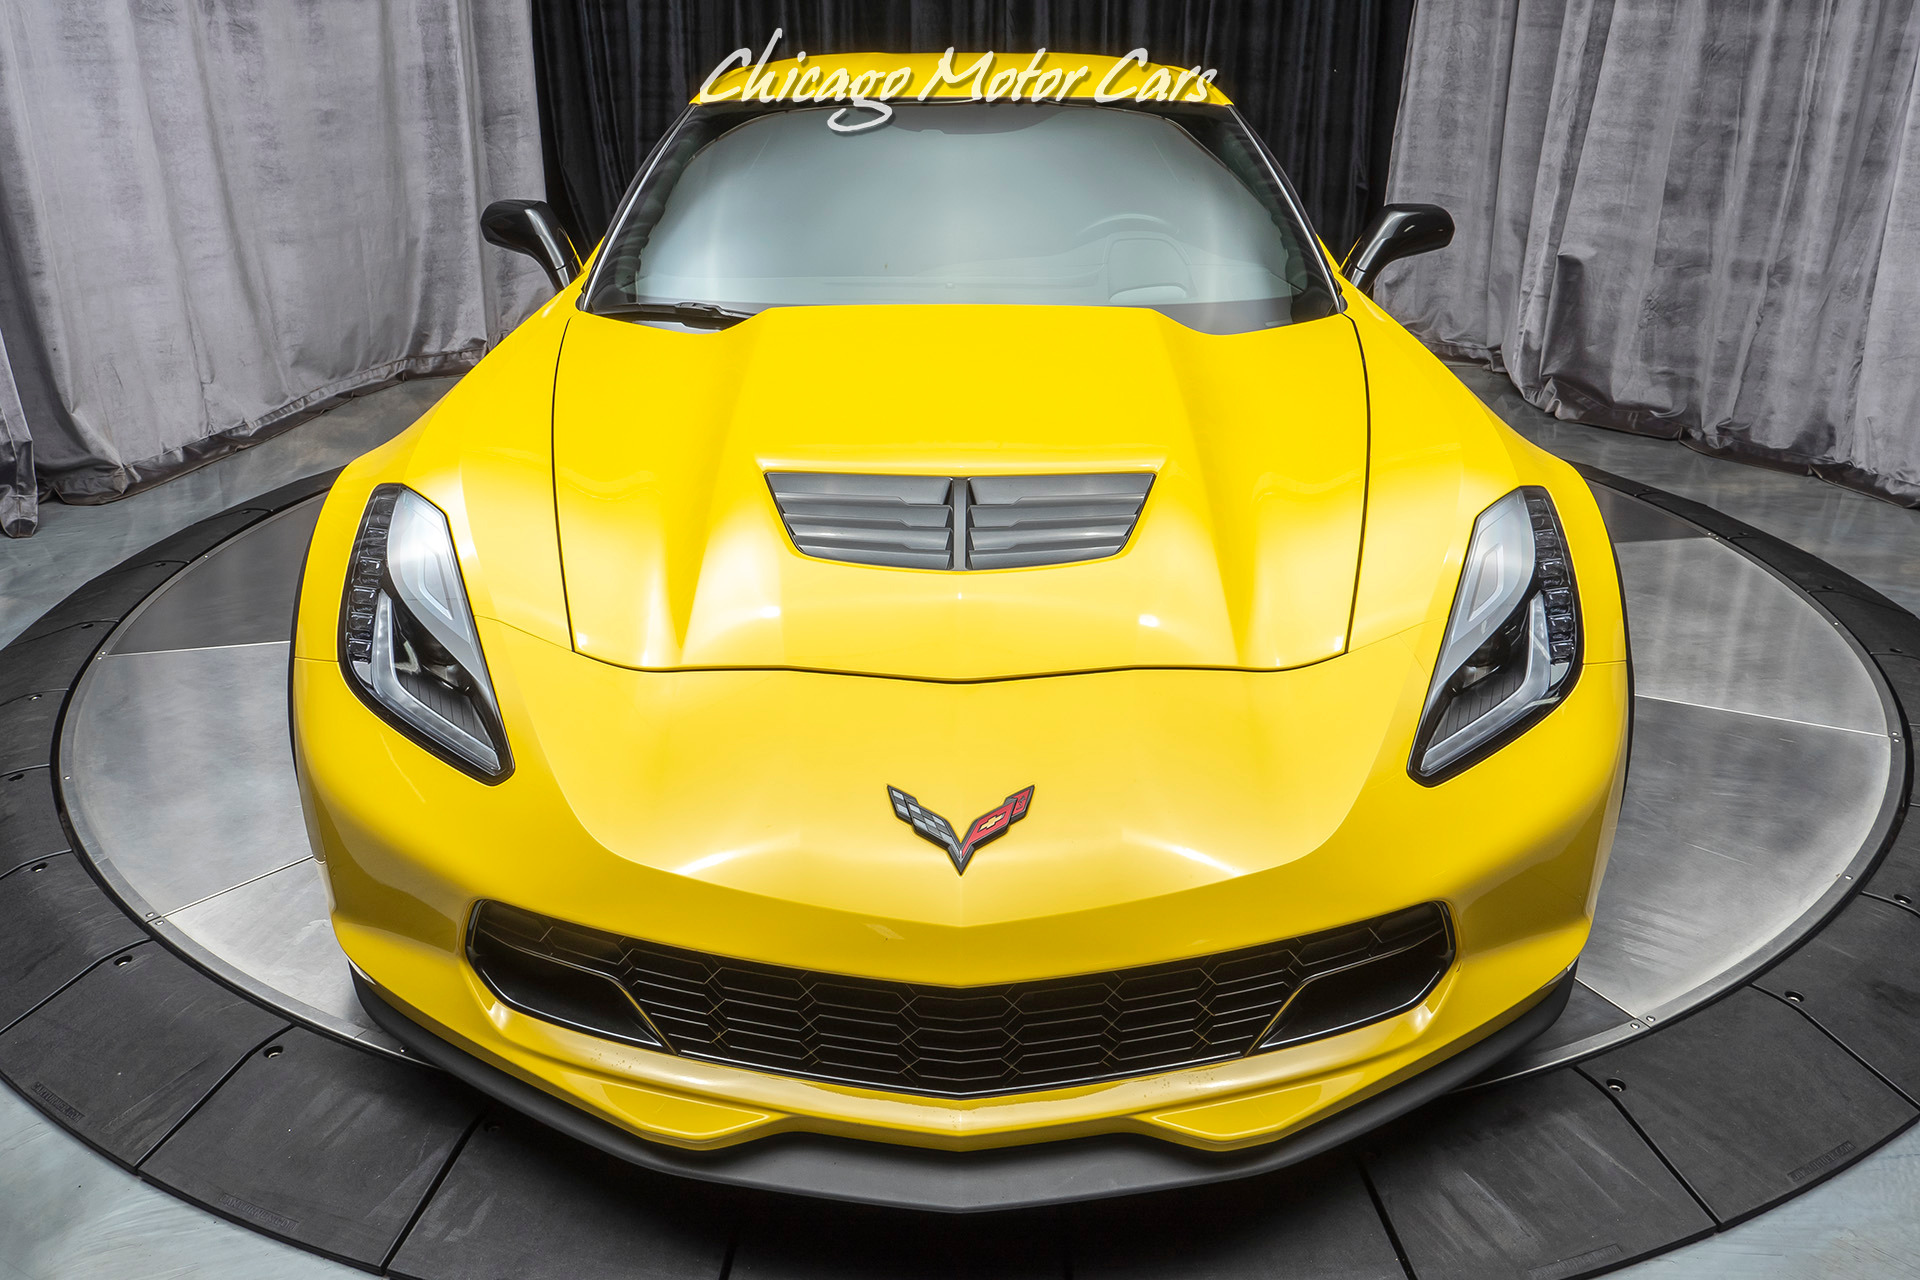 Used-2017-Chevrolet-Corvette-Z06-Procharged-Coupe-Automatic-740-Wheel-HP